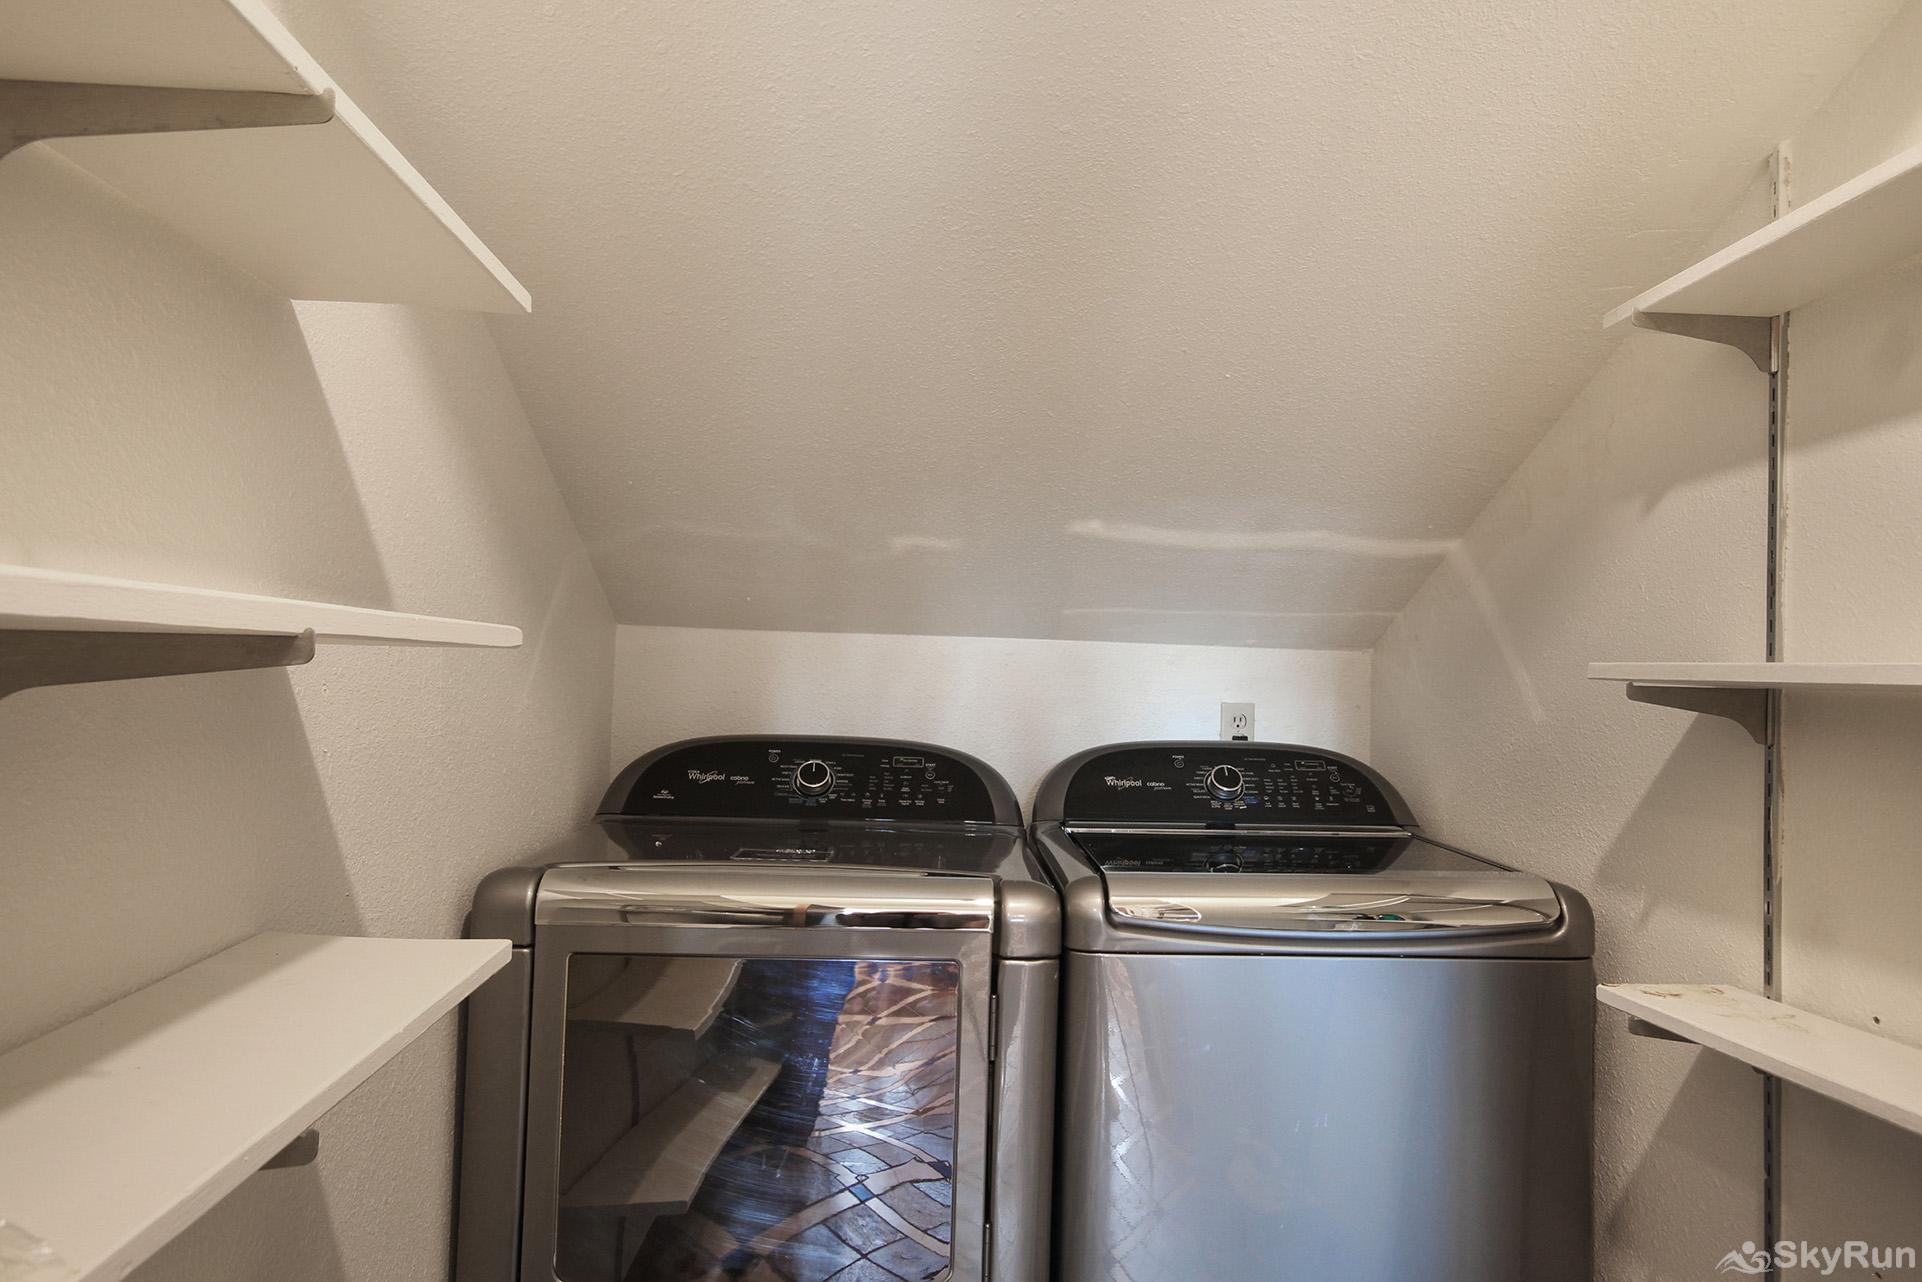 Summit Solitude Estate Convenient in-home washer and dryer